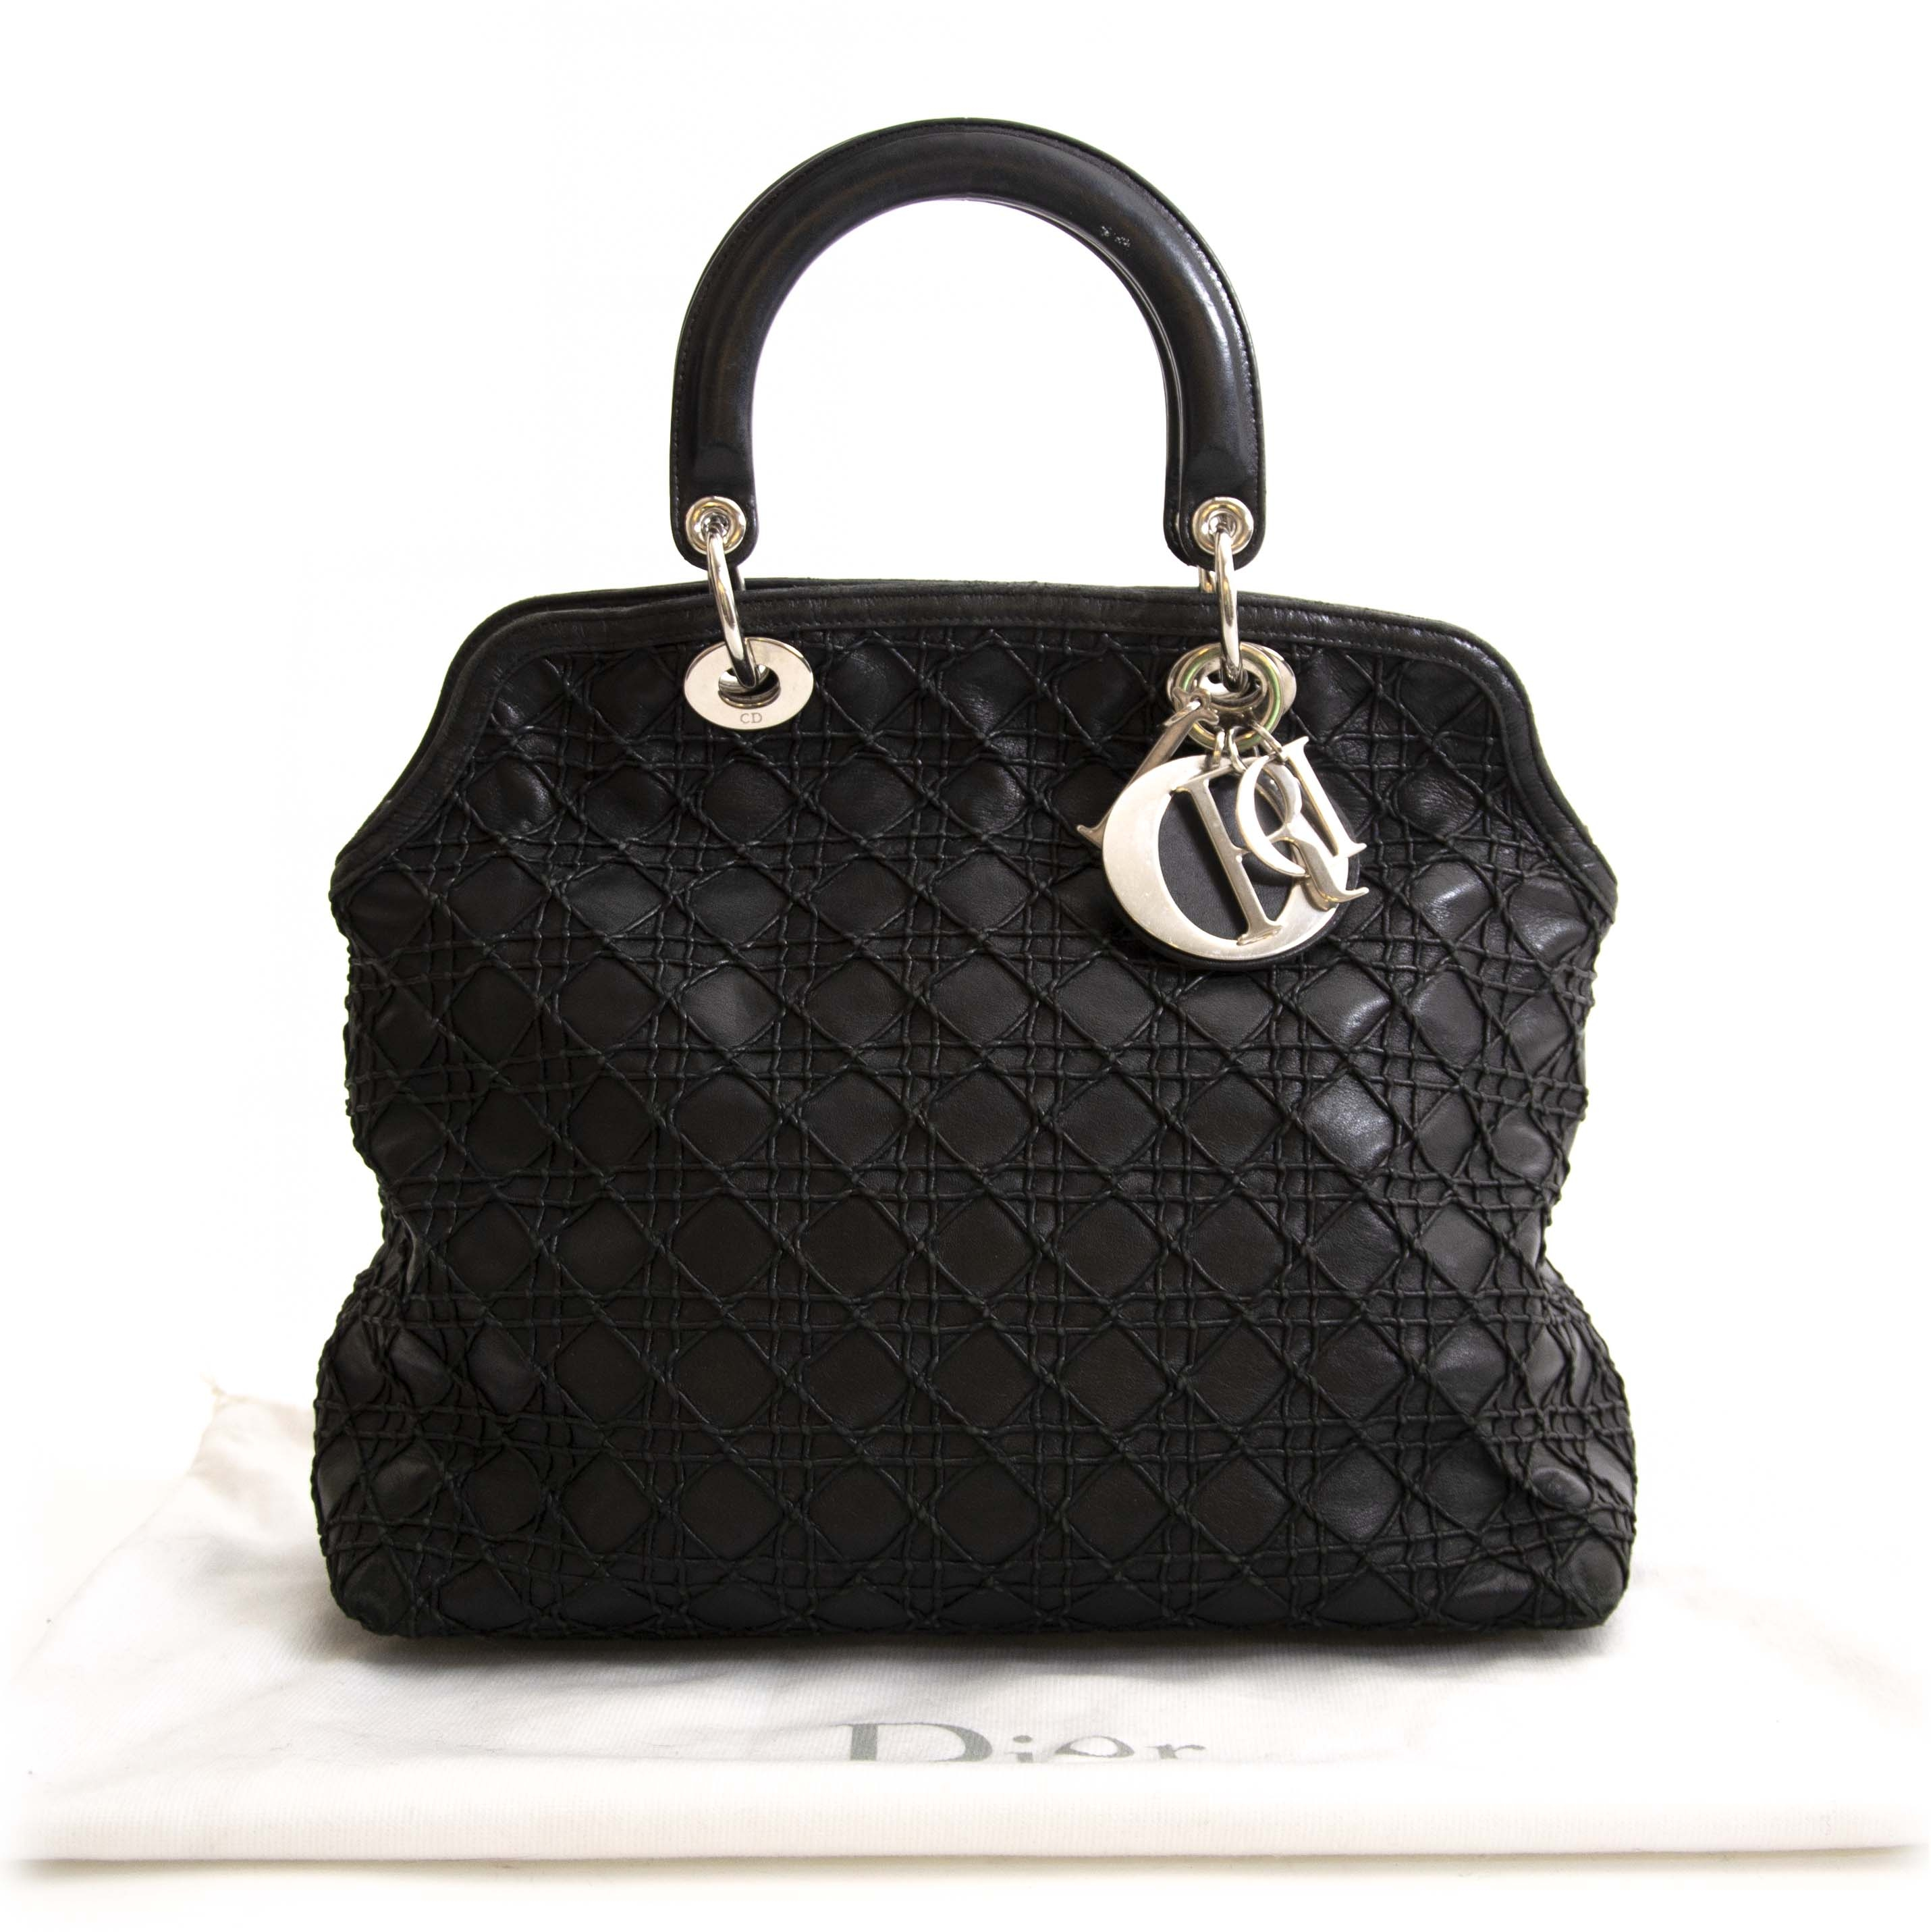 Lady Dior Black Cannage Tote Bag Buy and sell vintage secondhand handbags at Labellov in Antwerp Belgium. Pay safe and secure on the Labellov webshop. Koop en verkoop je handtas online bij Labellov Antwerpen België. Vente et achat des sac a mains vintage